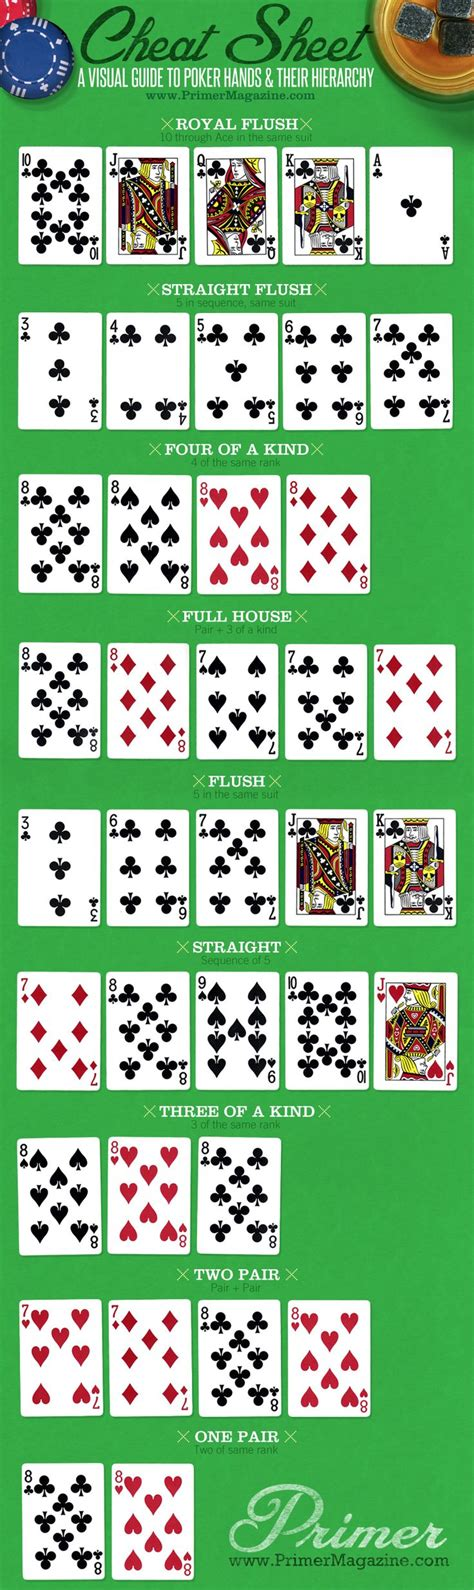 How To Win Money Playing Poker - how to play texas holdem step by step dog breeds picture